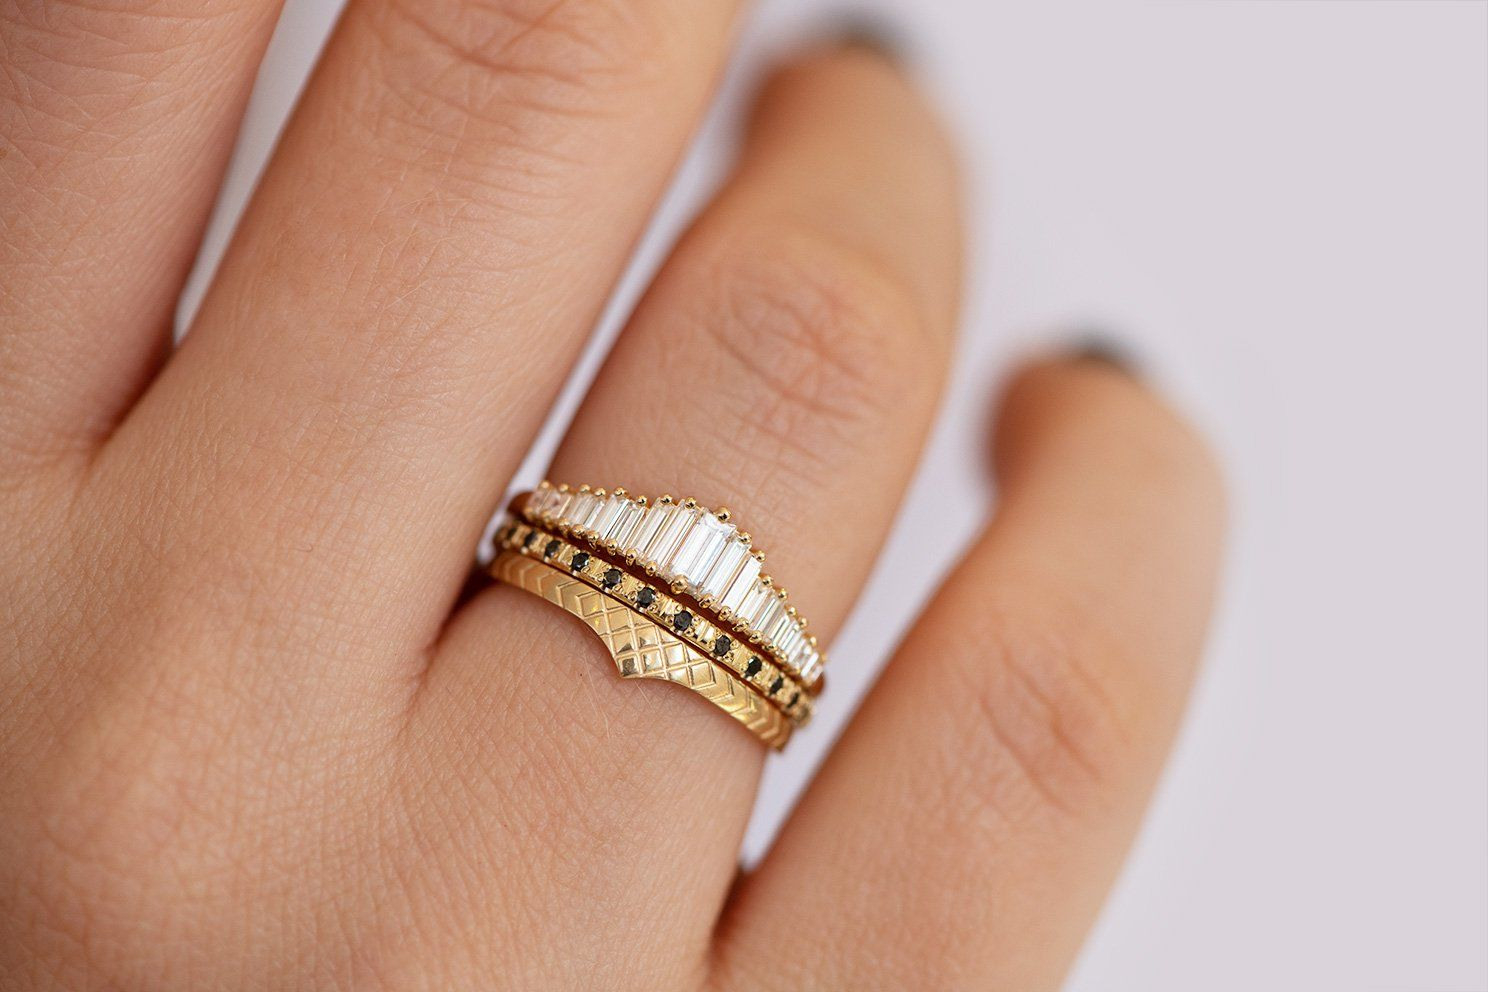 Delicate Wedding Band - Patterned Ring | Antike